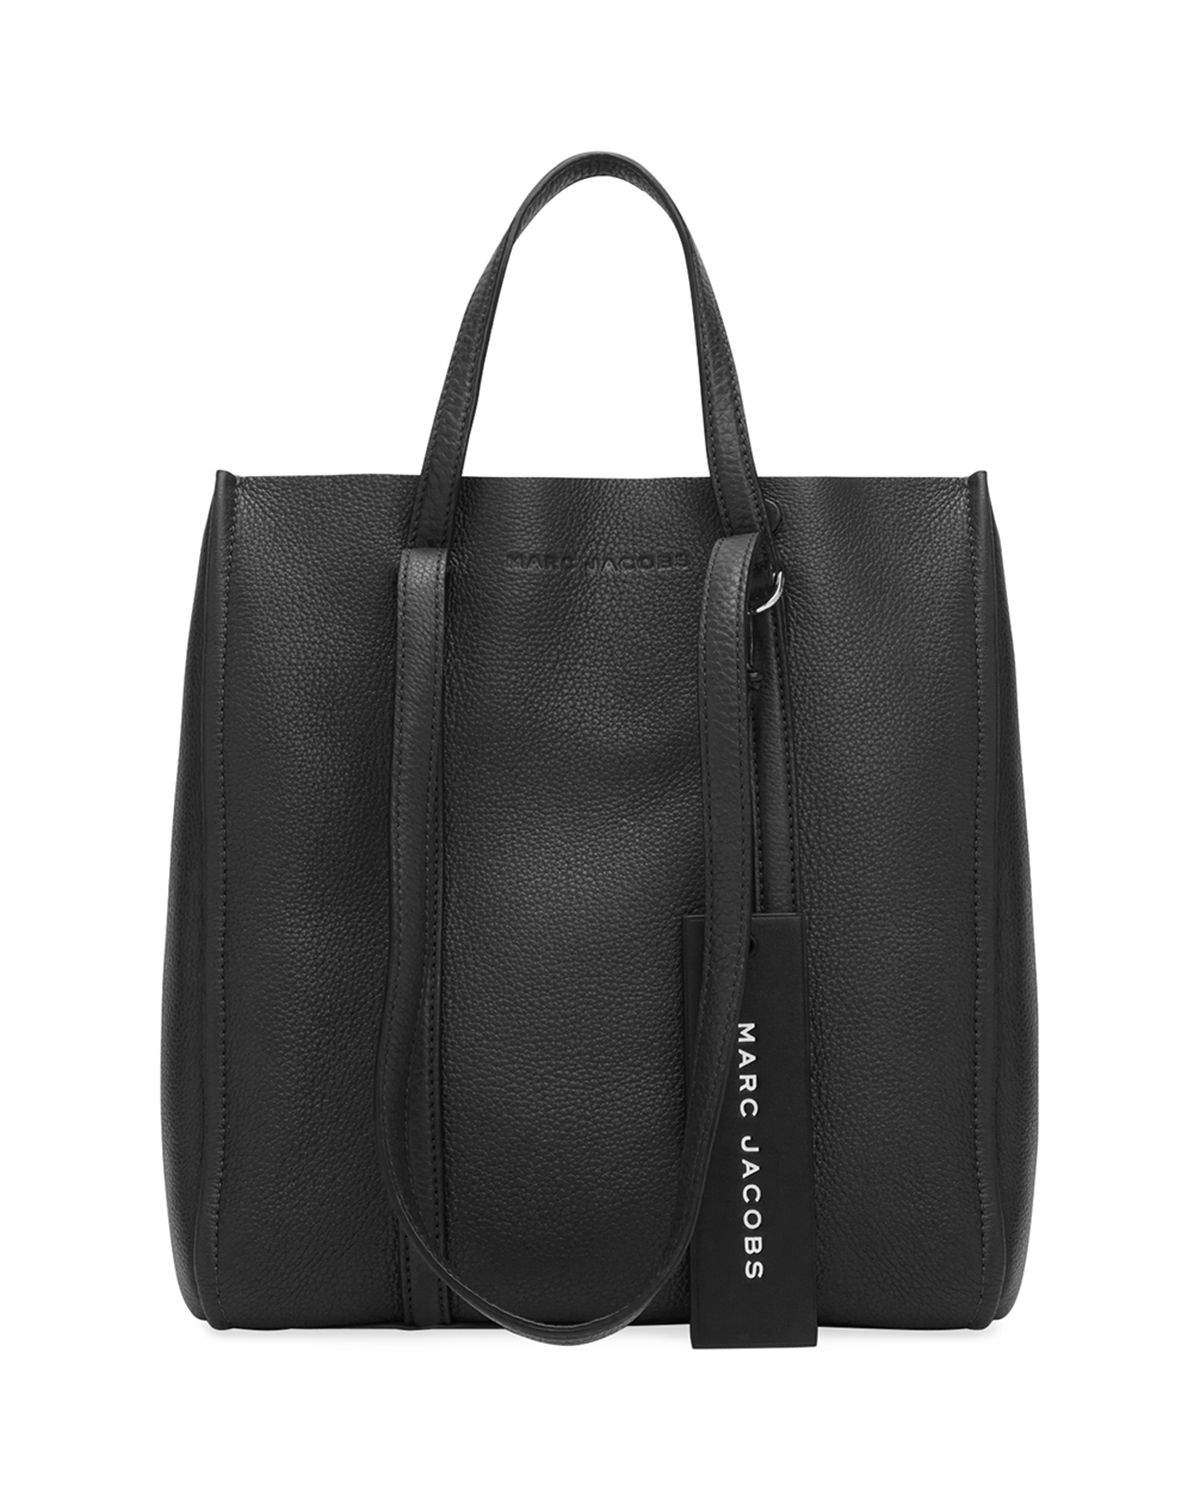 72dd0144cd82 Marc Jacobs The Tag 31 Leather Tote Bag